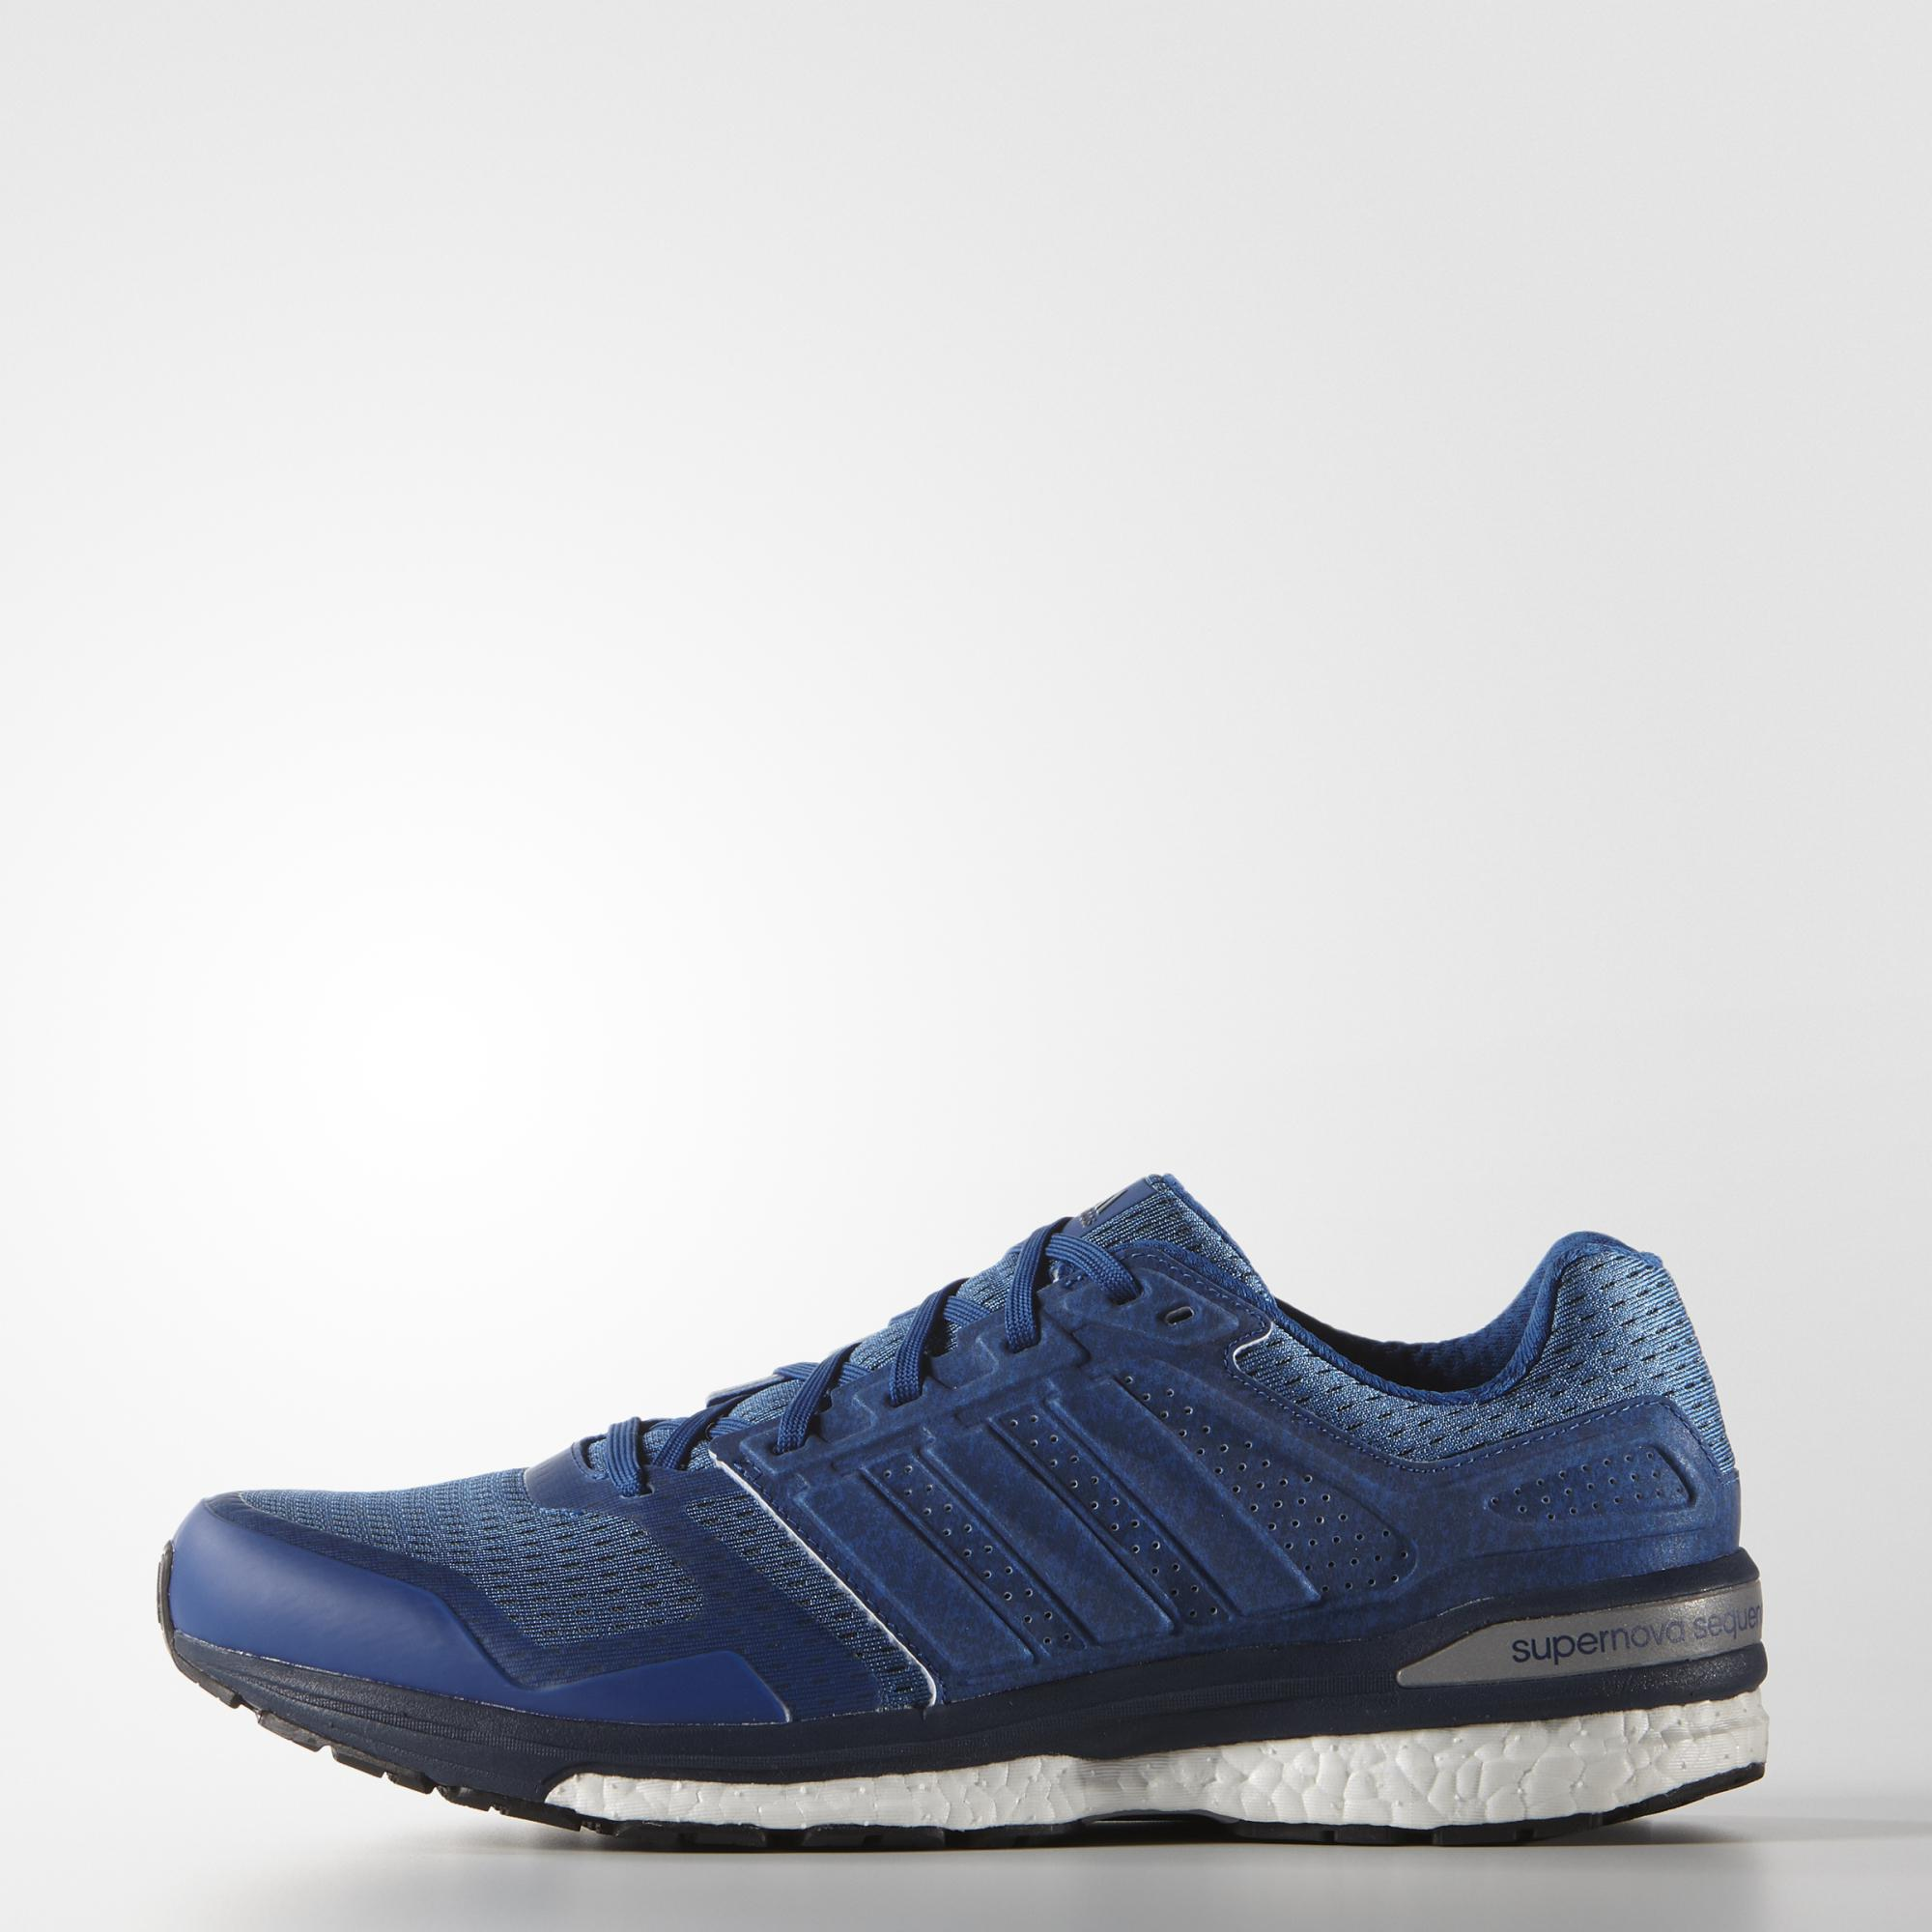 bfc648de6b0 Adidas Mens Supernova Sequence Boost Running Shoes - Blue - Tennisnuts.com